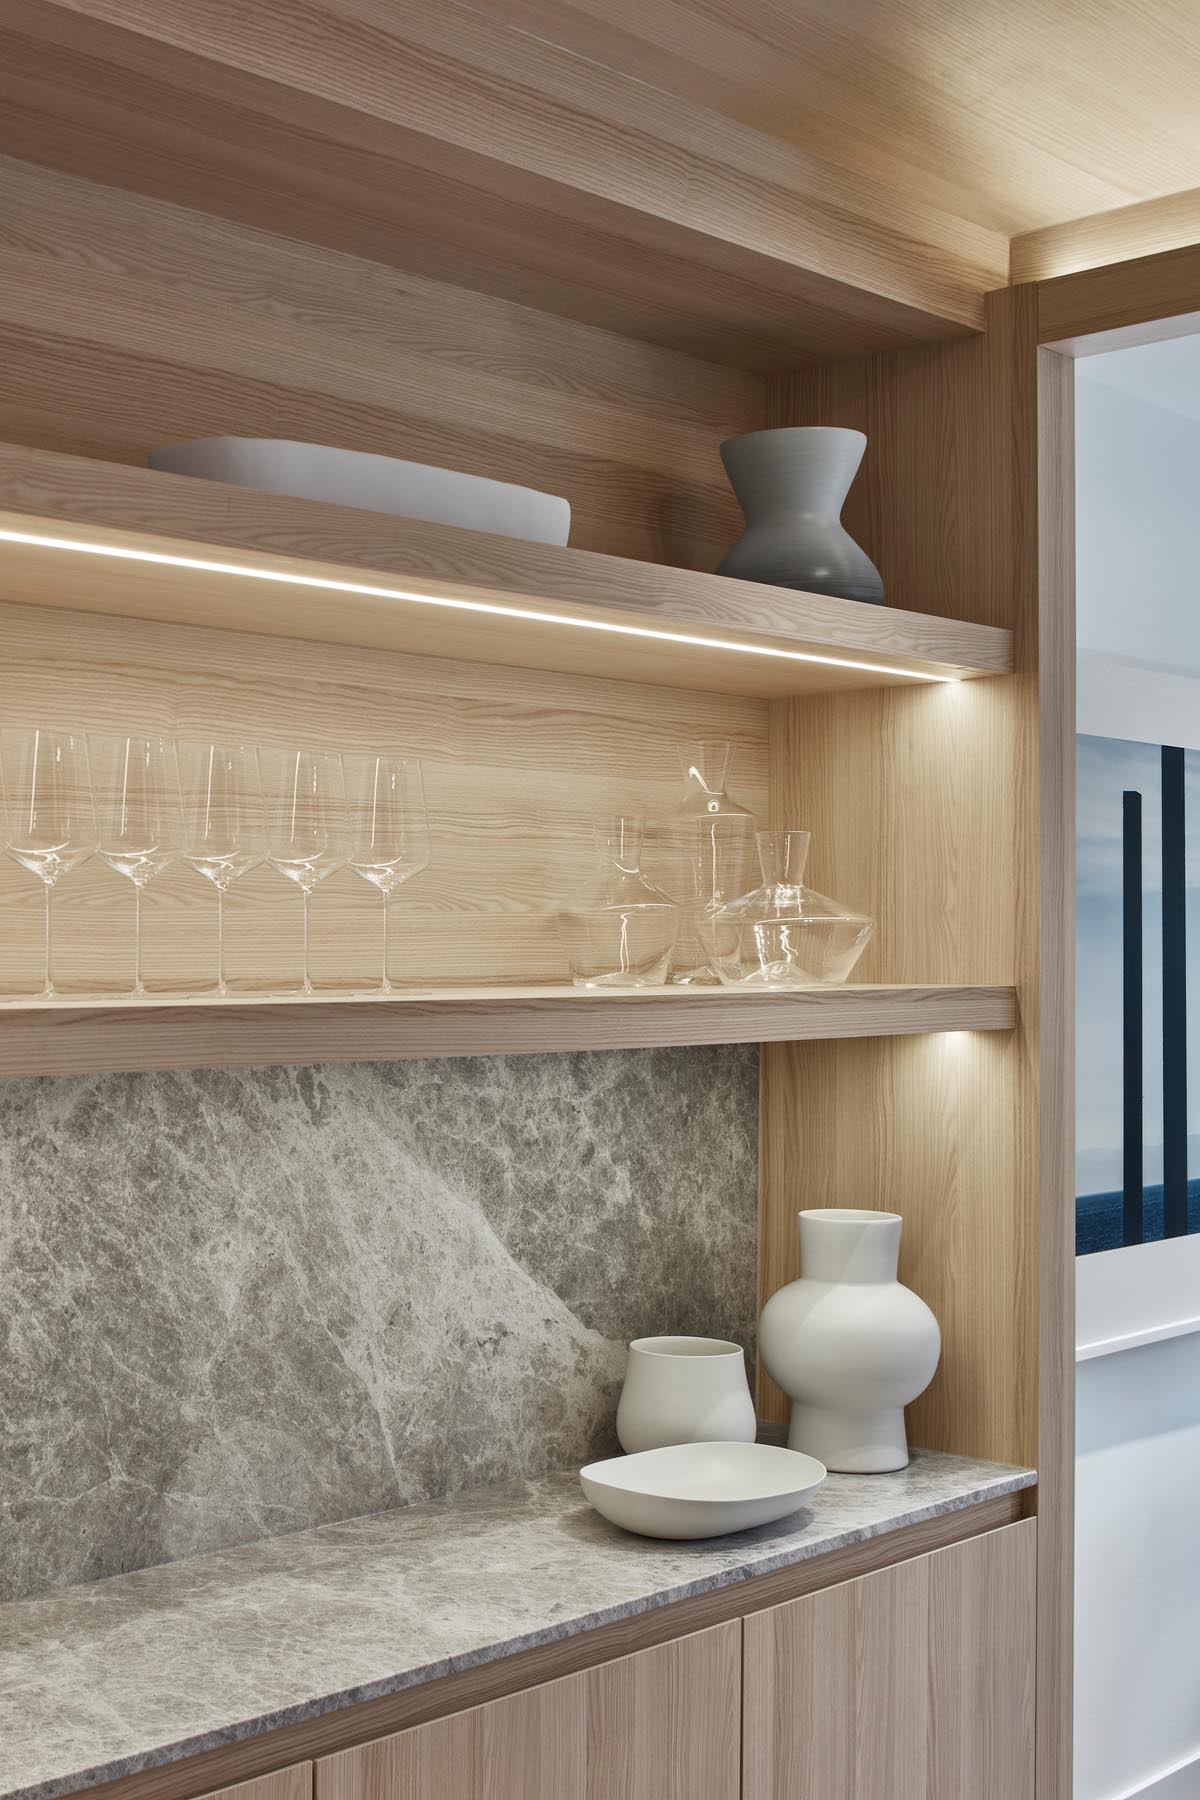 A modern wood kitchen with hidden lighting to show off the items on the shelf below.